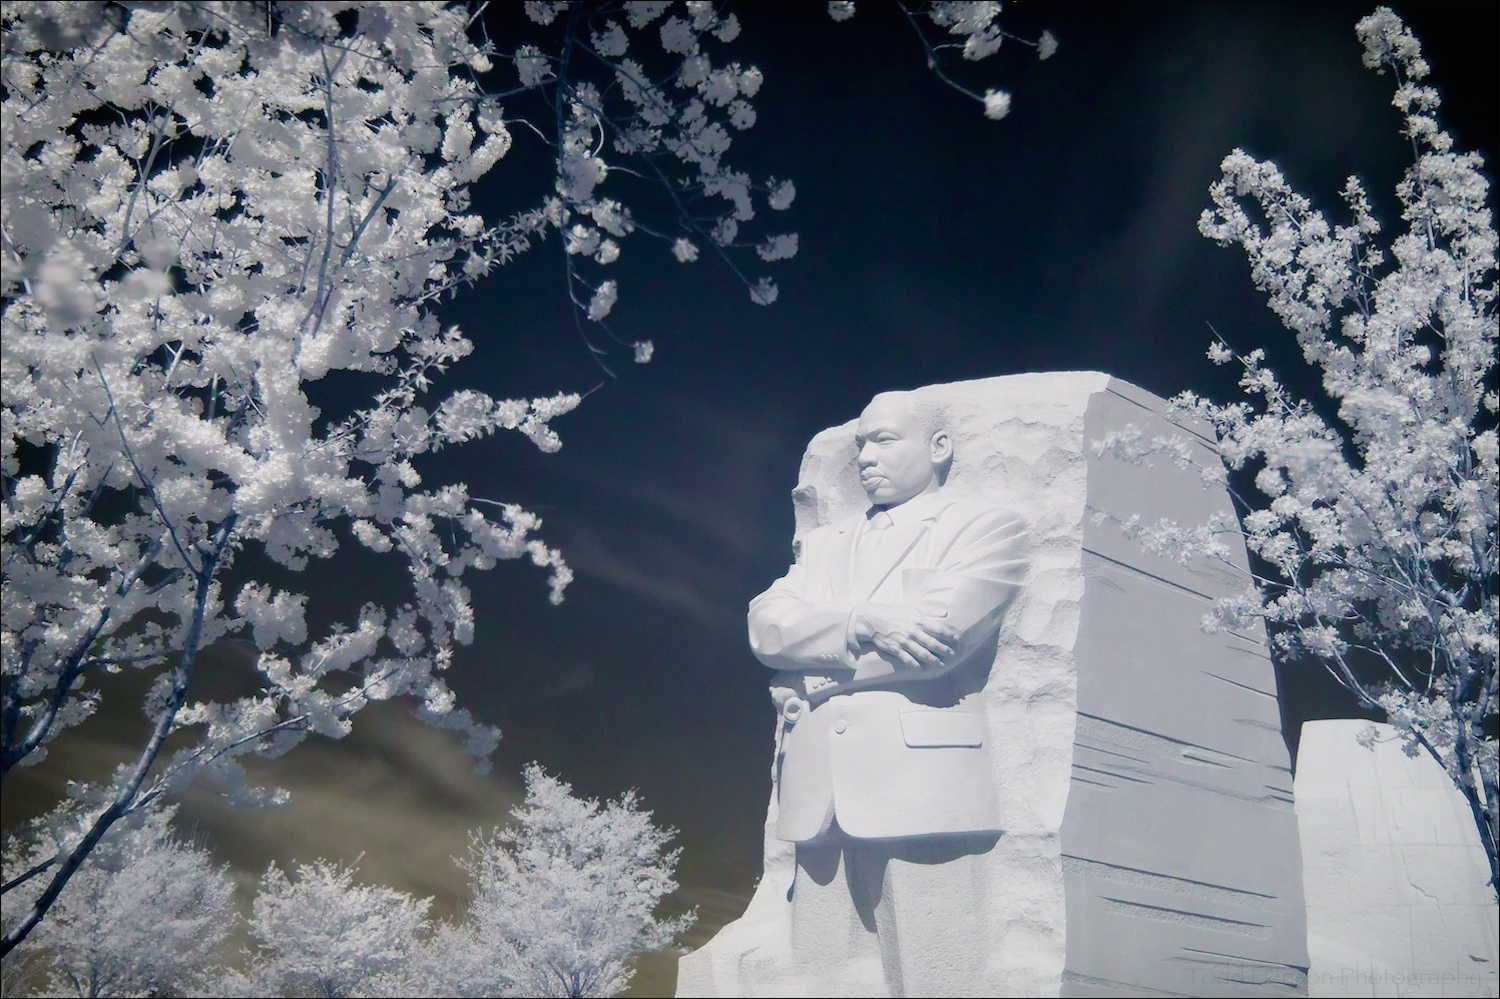 Martin Luther King, Jr. Memorial with cherry blossoms in bloom, in infrared.